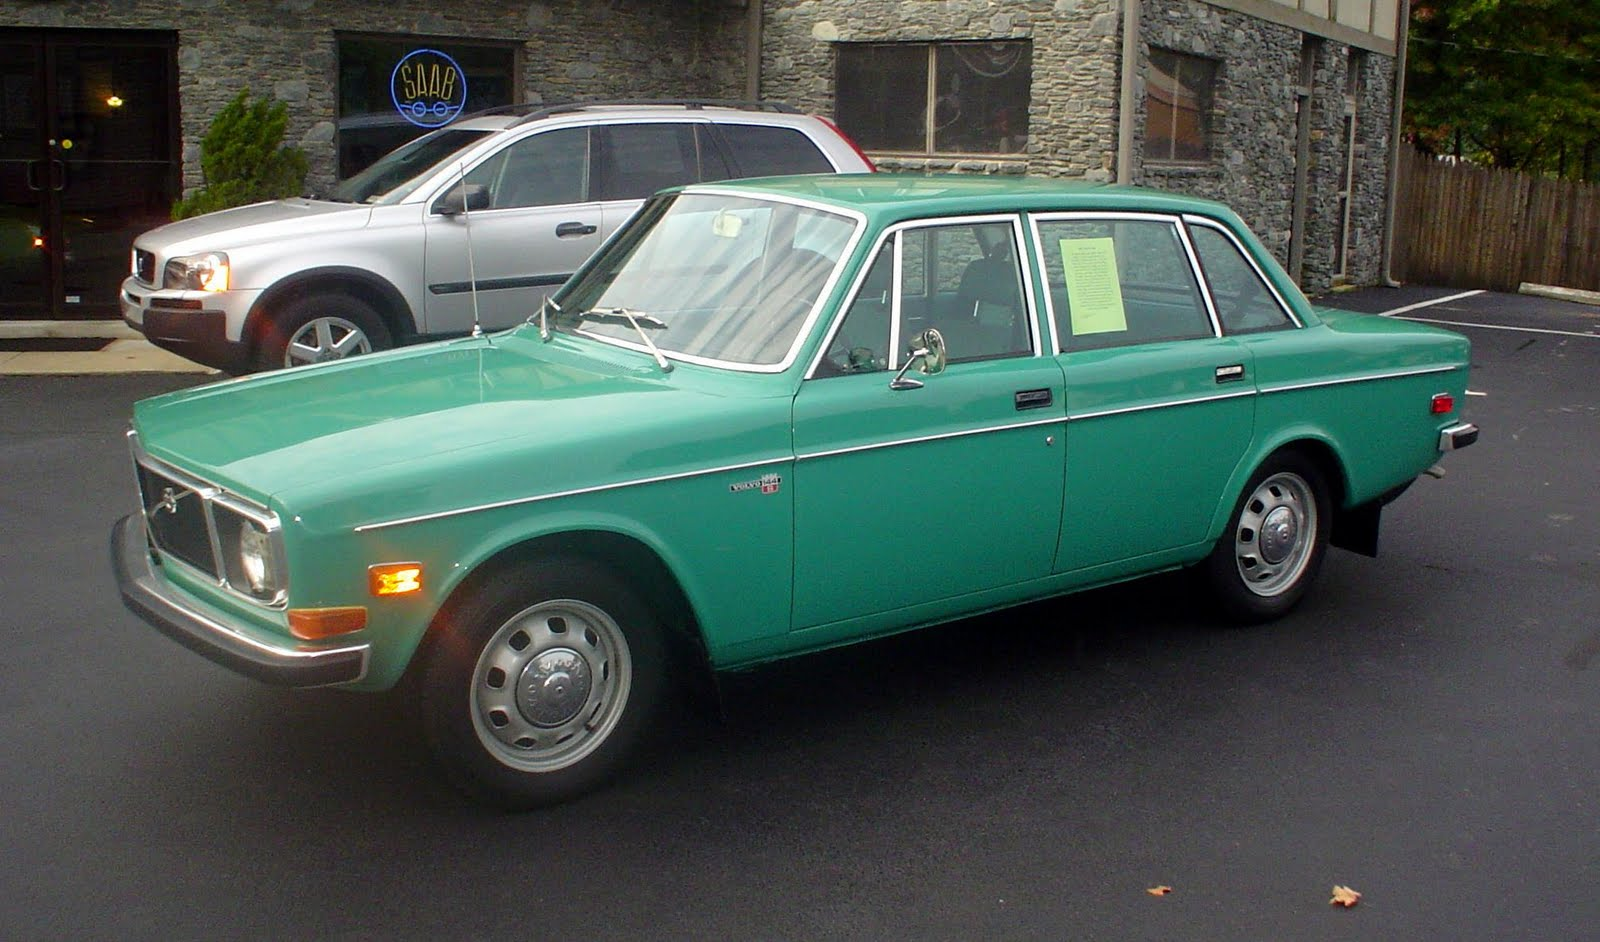 1972 Volvo 144s What It Meant To Drive A Green Car Back In 72